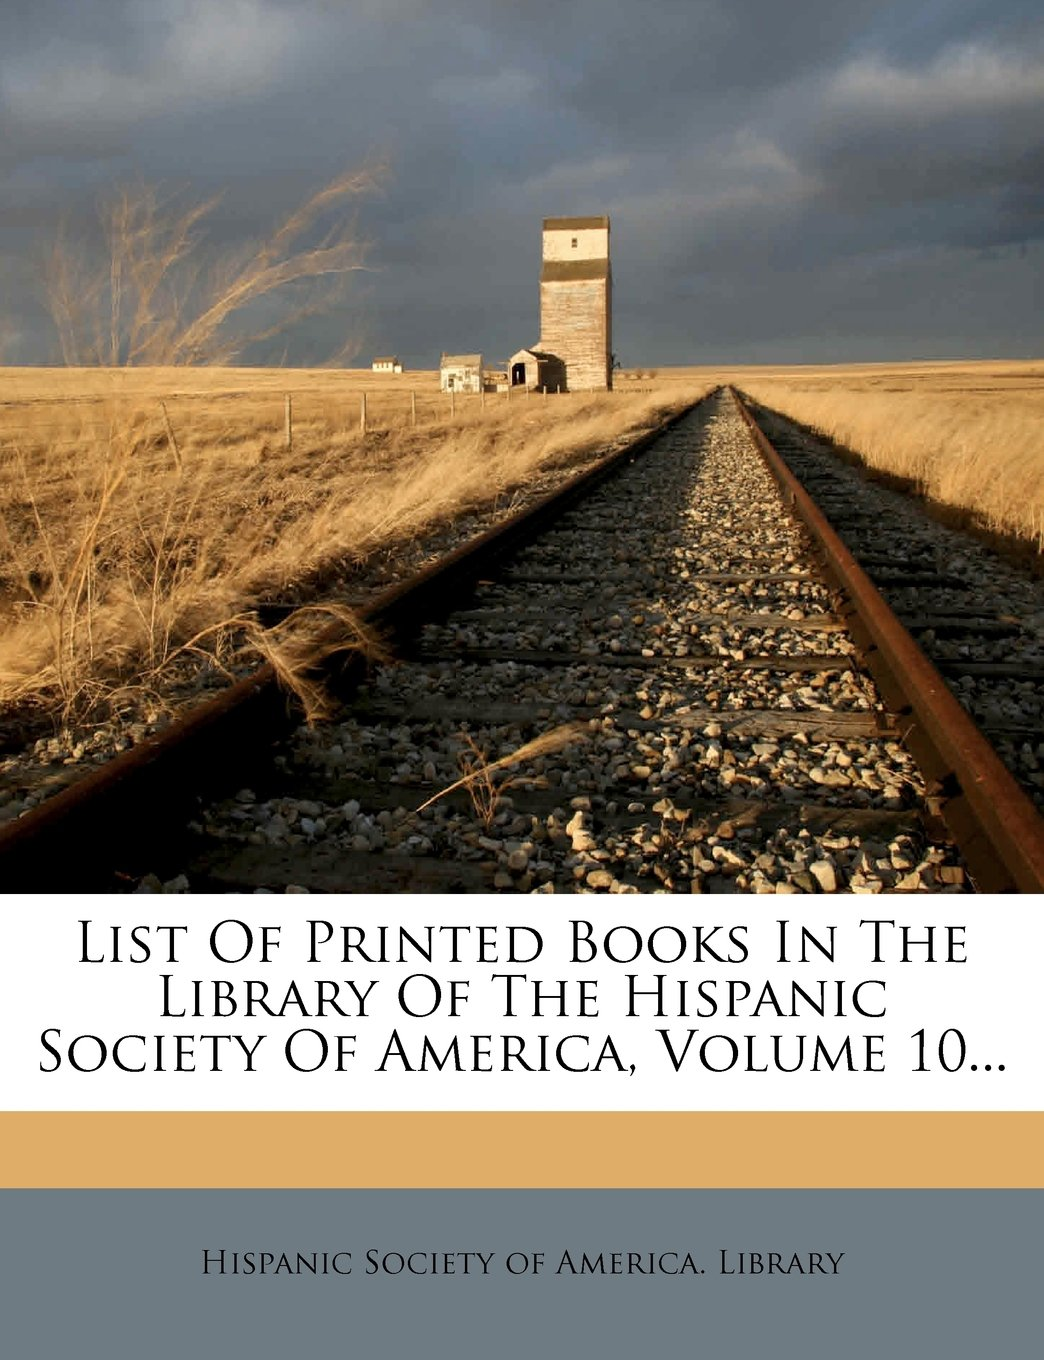 List of Printed Books in the Library of the Hispanic Society of America, Volume 10... (Spanish Edition) ebook